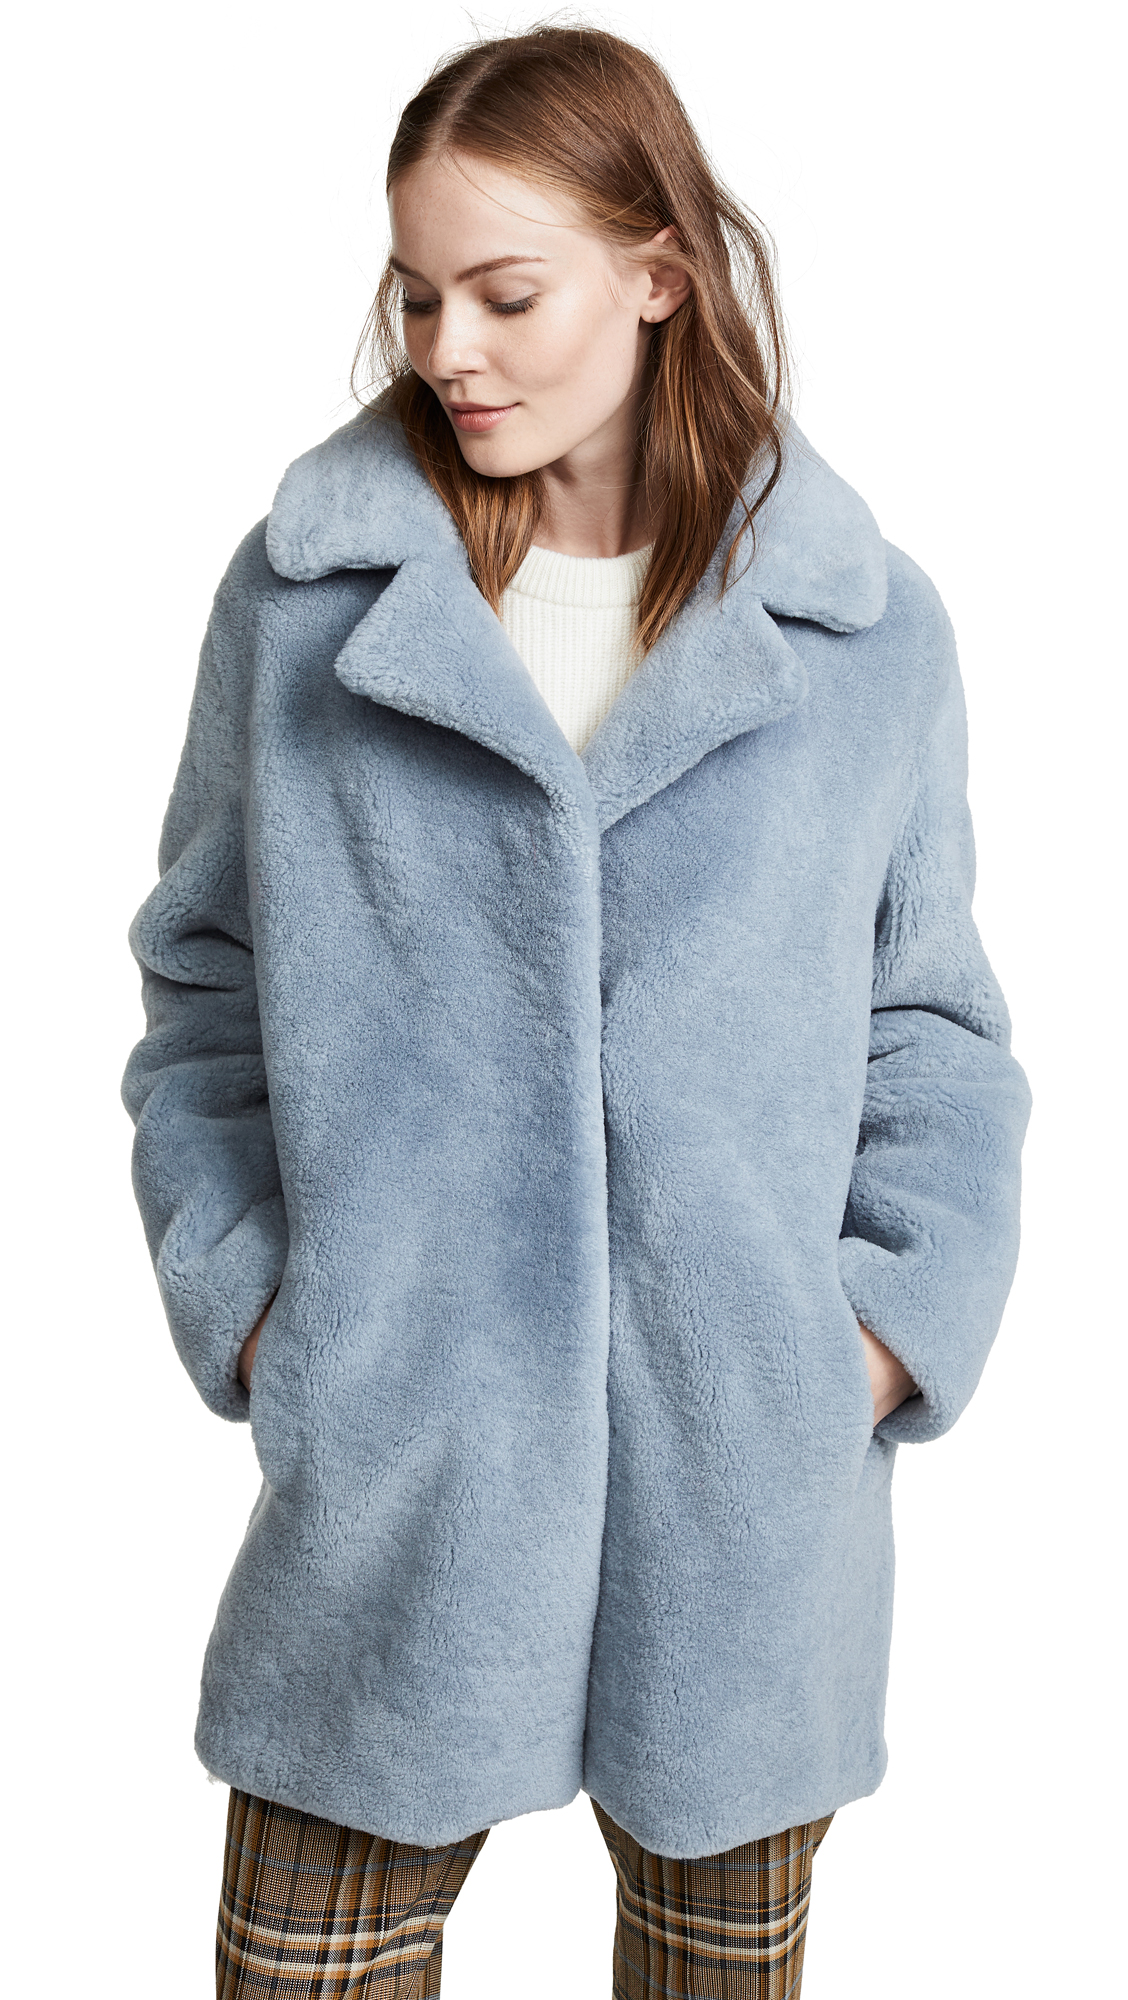 YVES SALOMON - METEO Fleece Coat In Bleu Glacier